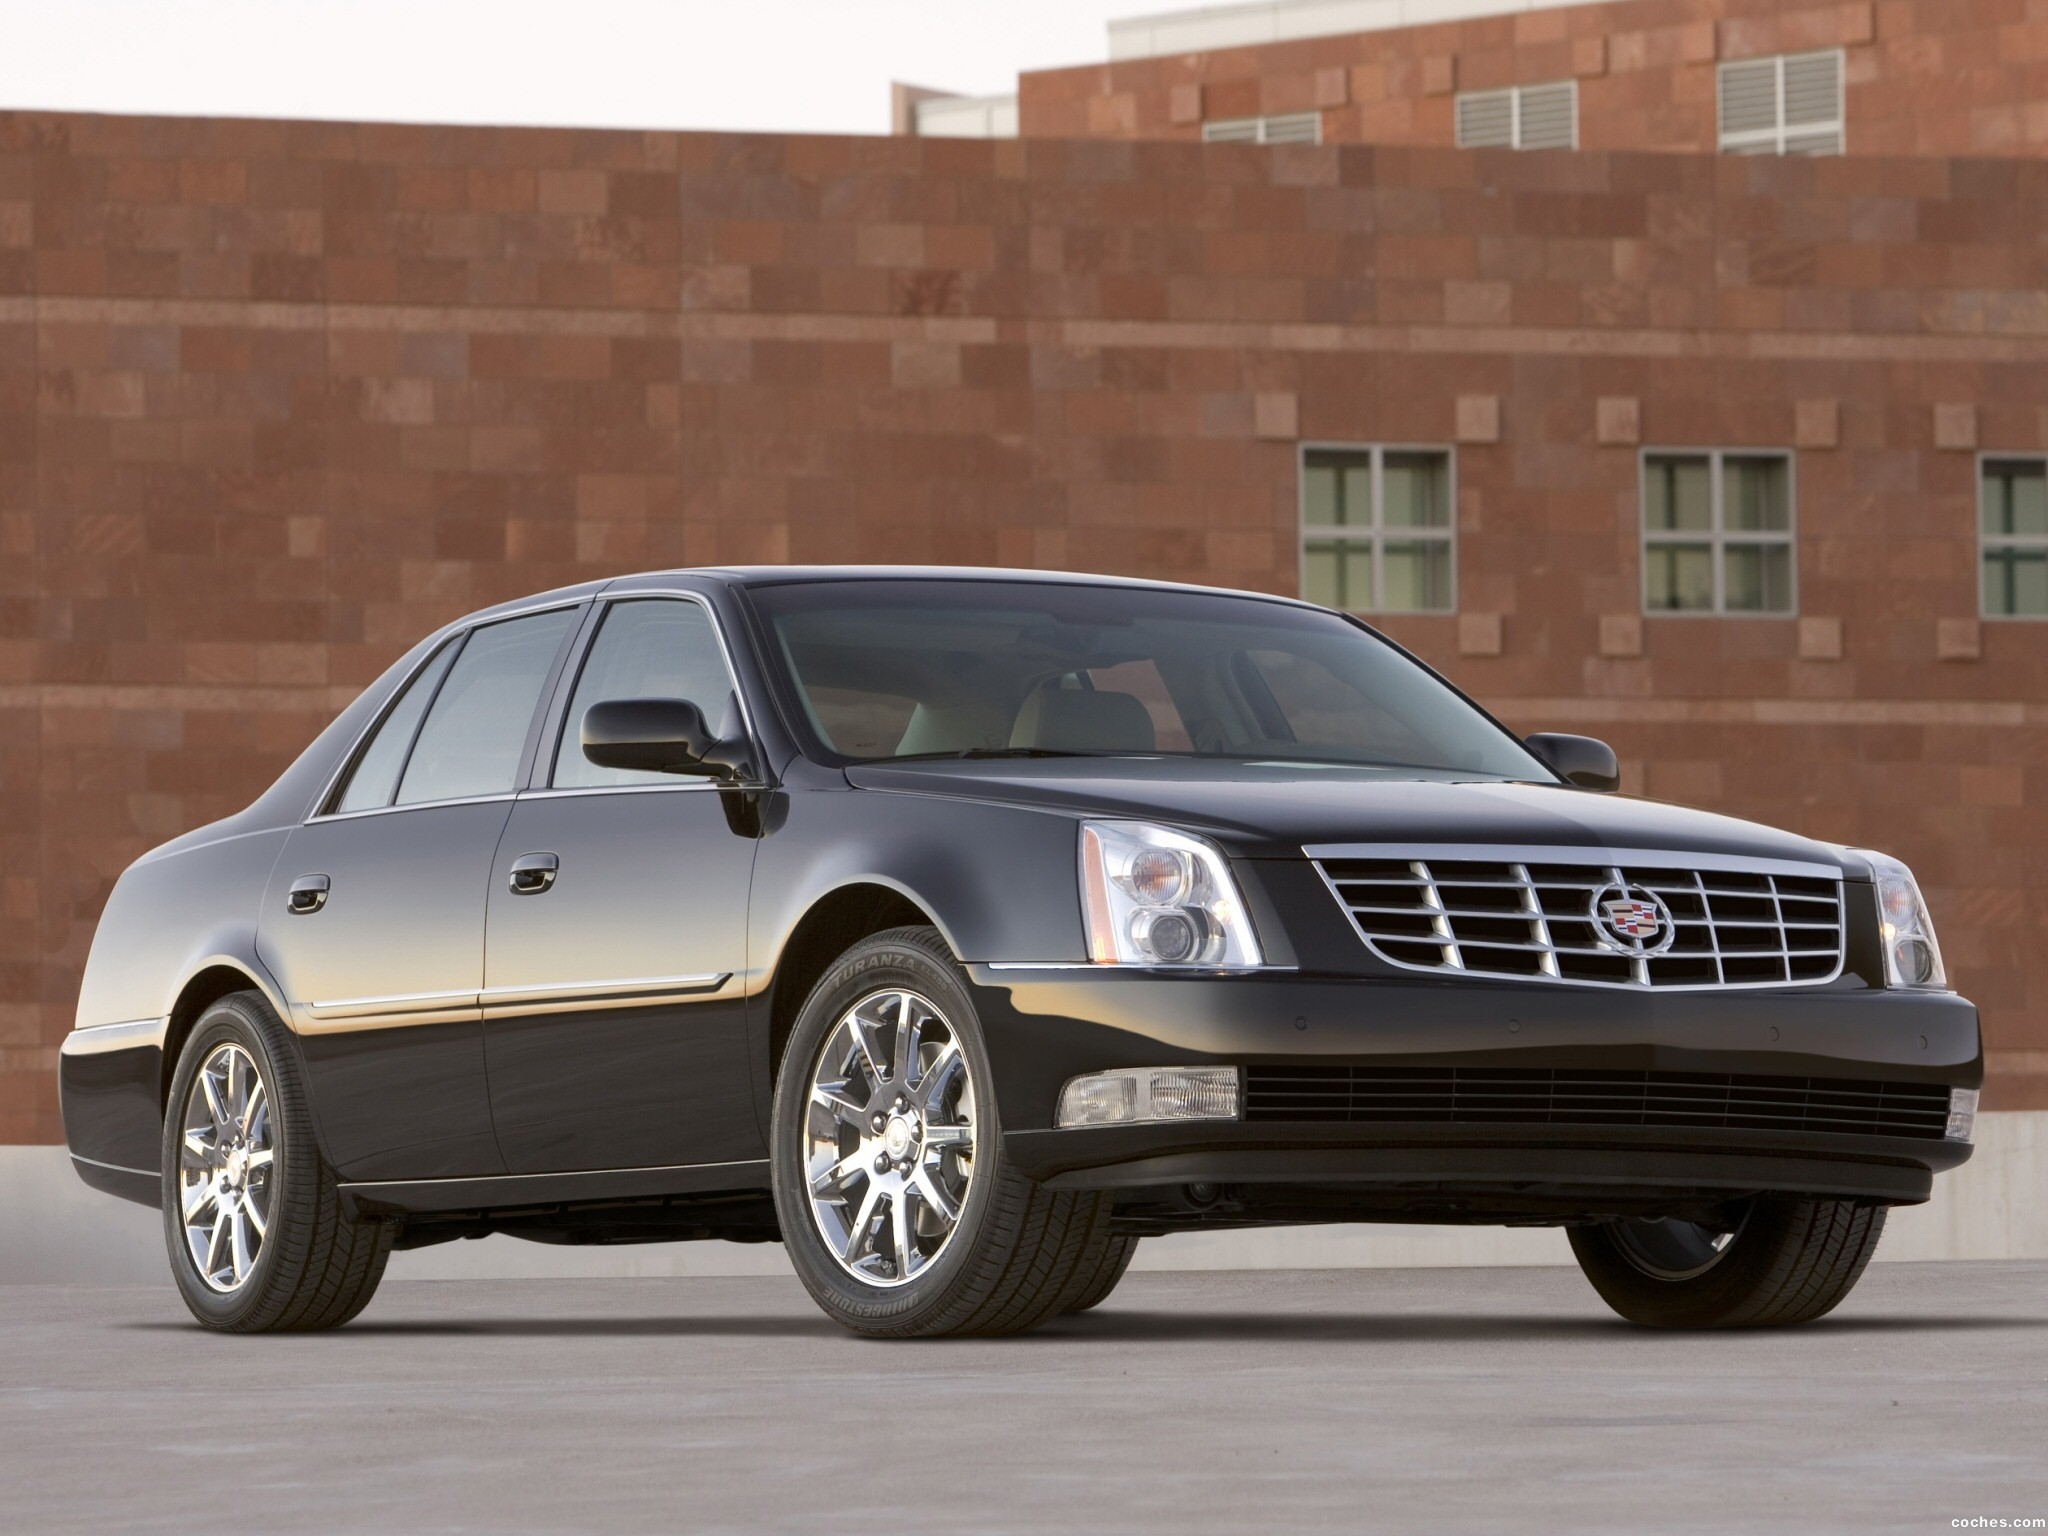 2008 cadillac dts pictures to pin on pinterest